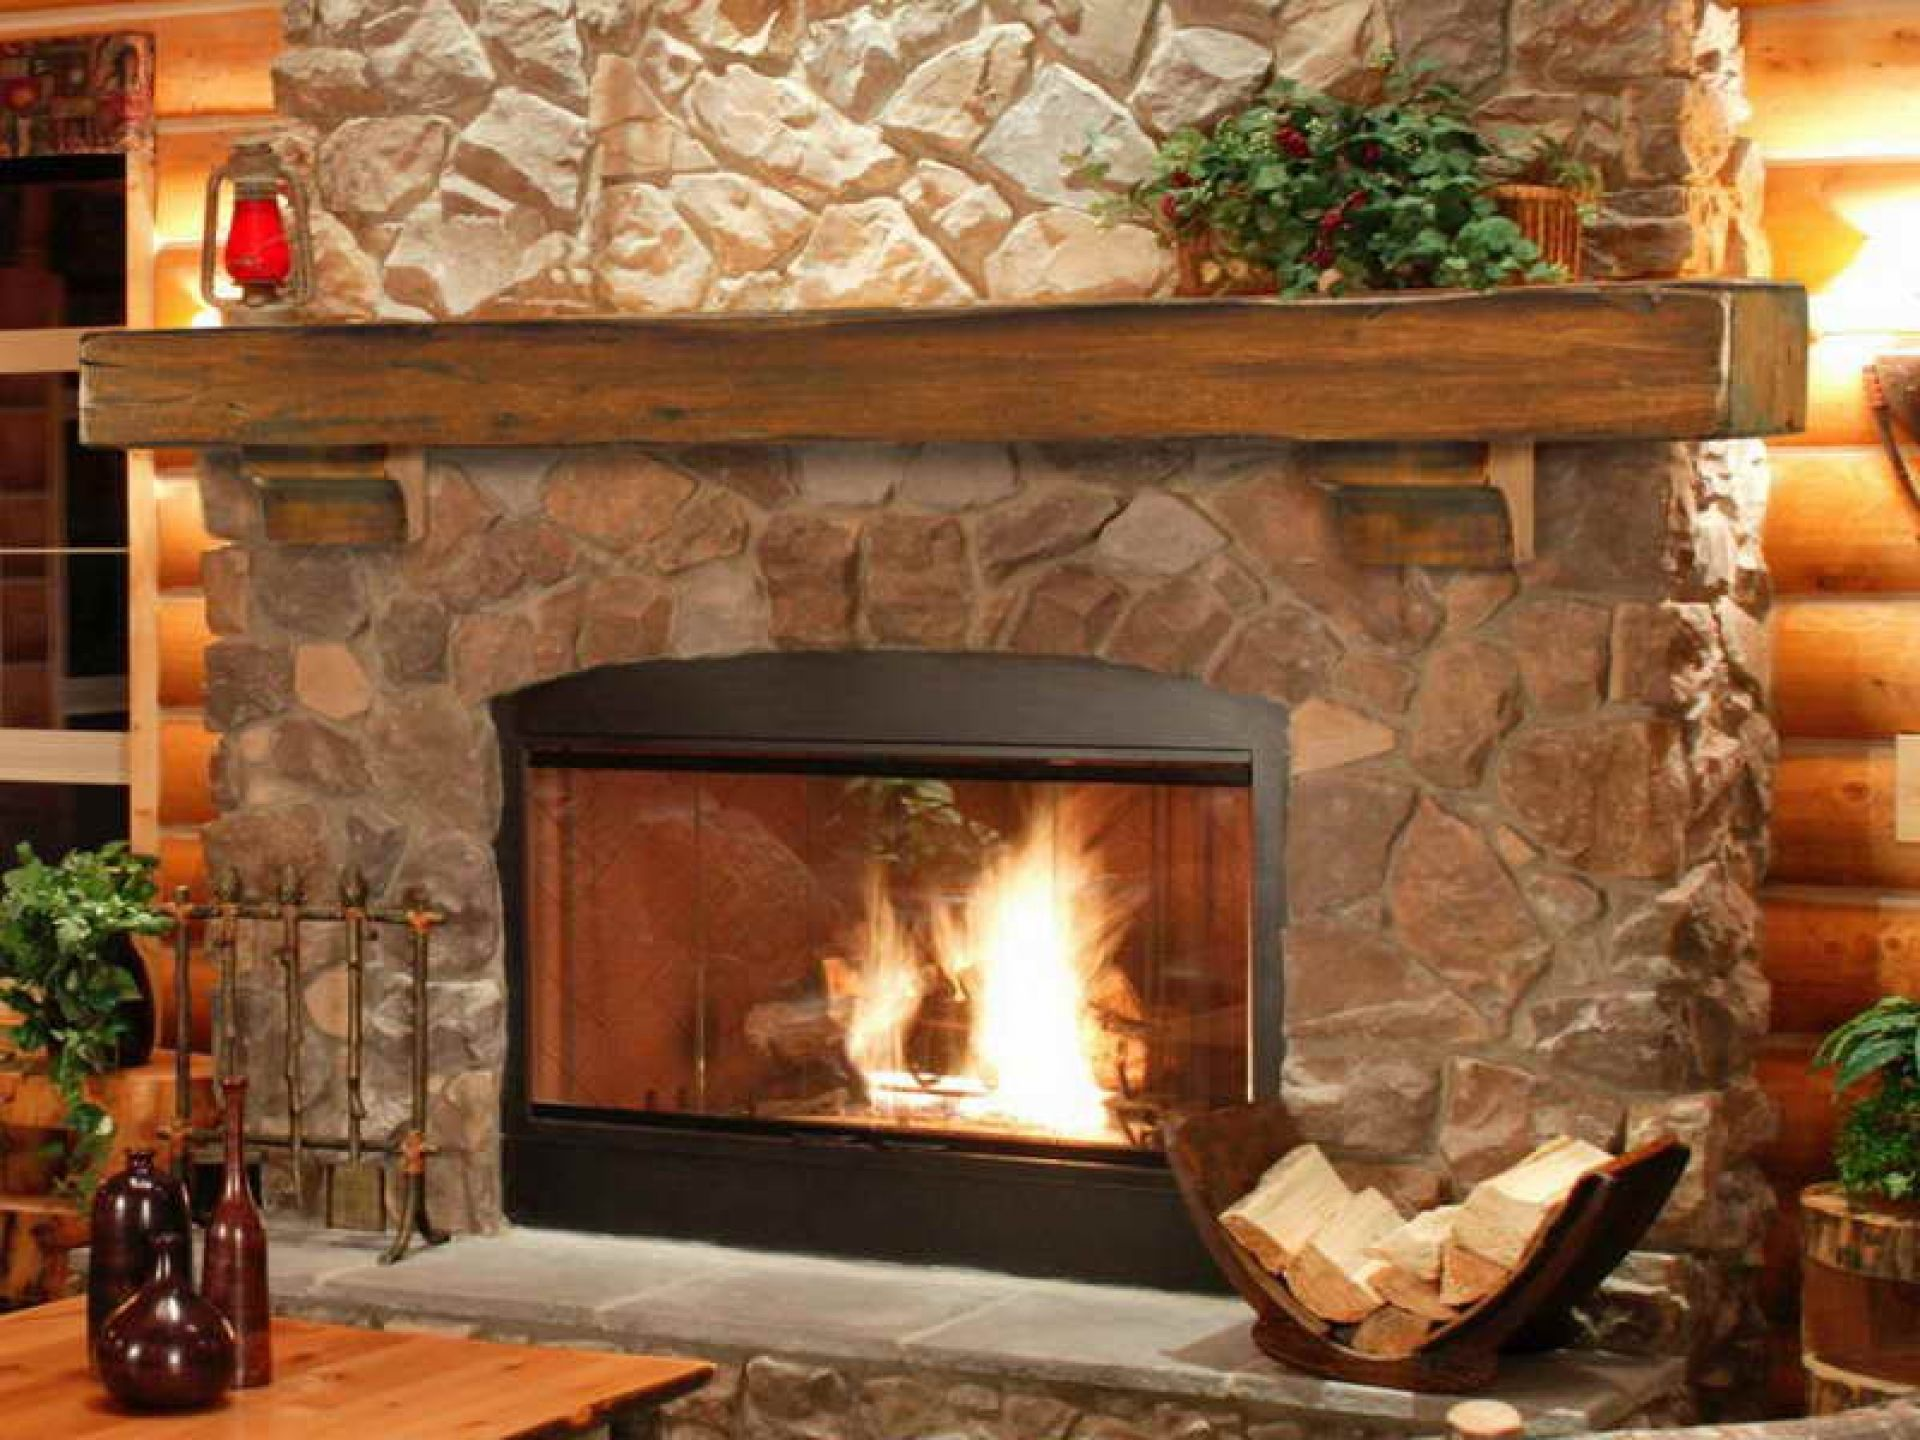 Cool stone fireplace mantels for interior design natural for Interior fireplace designs